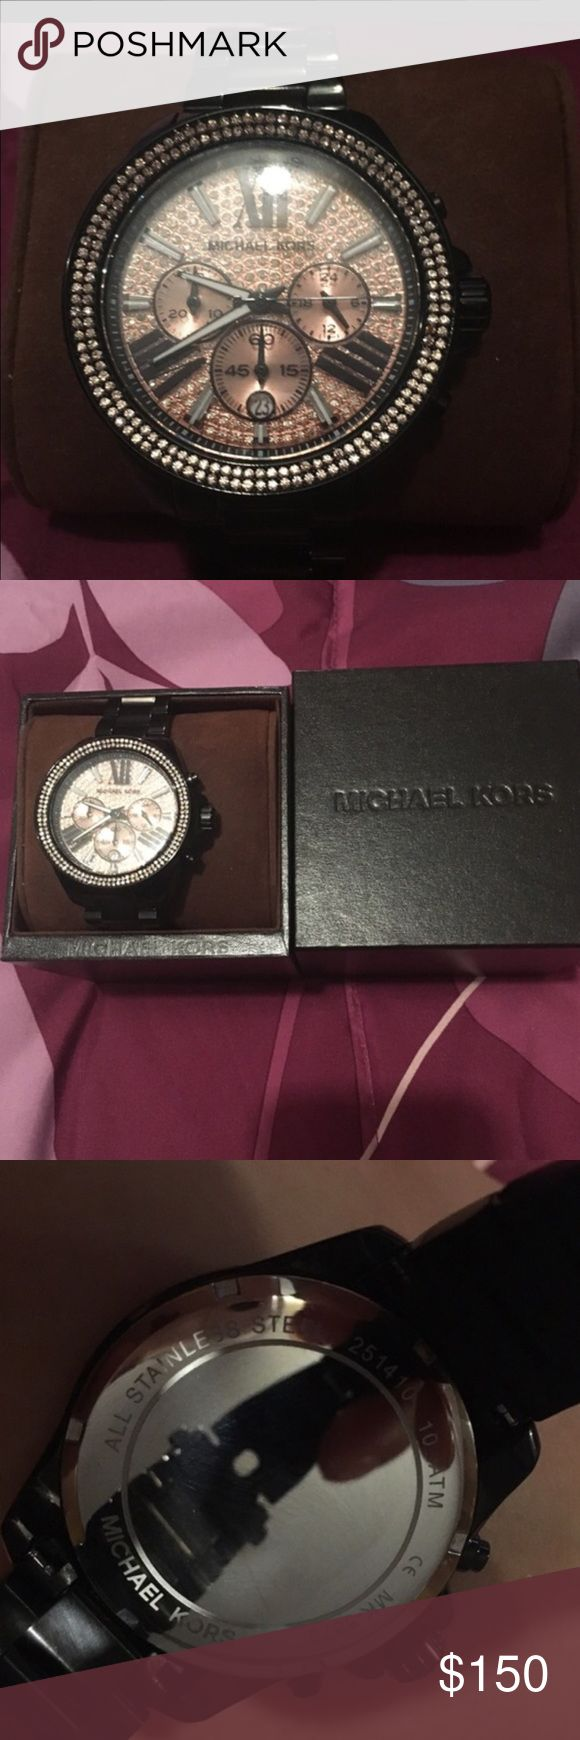 New Michael kors watch beautiful super nice New Michael kors watch with the box all the links in there I got it last years never used it just need new battery still has the plastic no trades pls just selling Michael Kors Accessories Watches